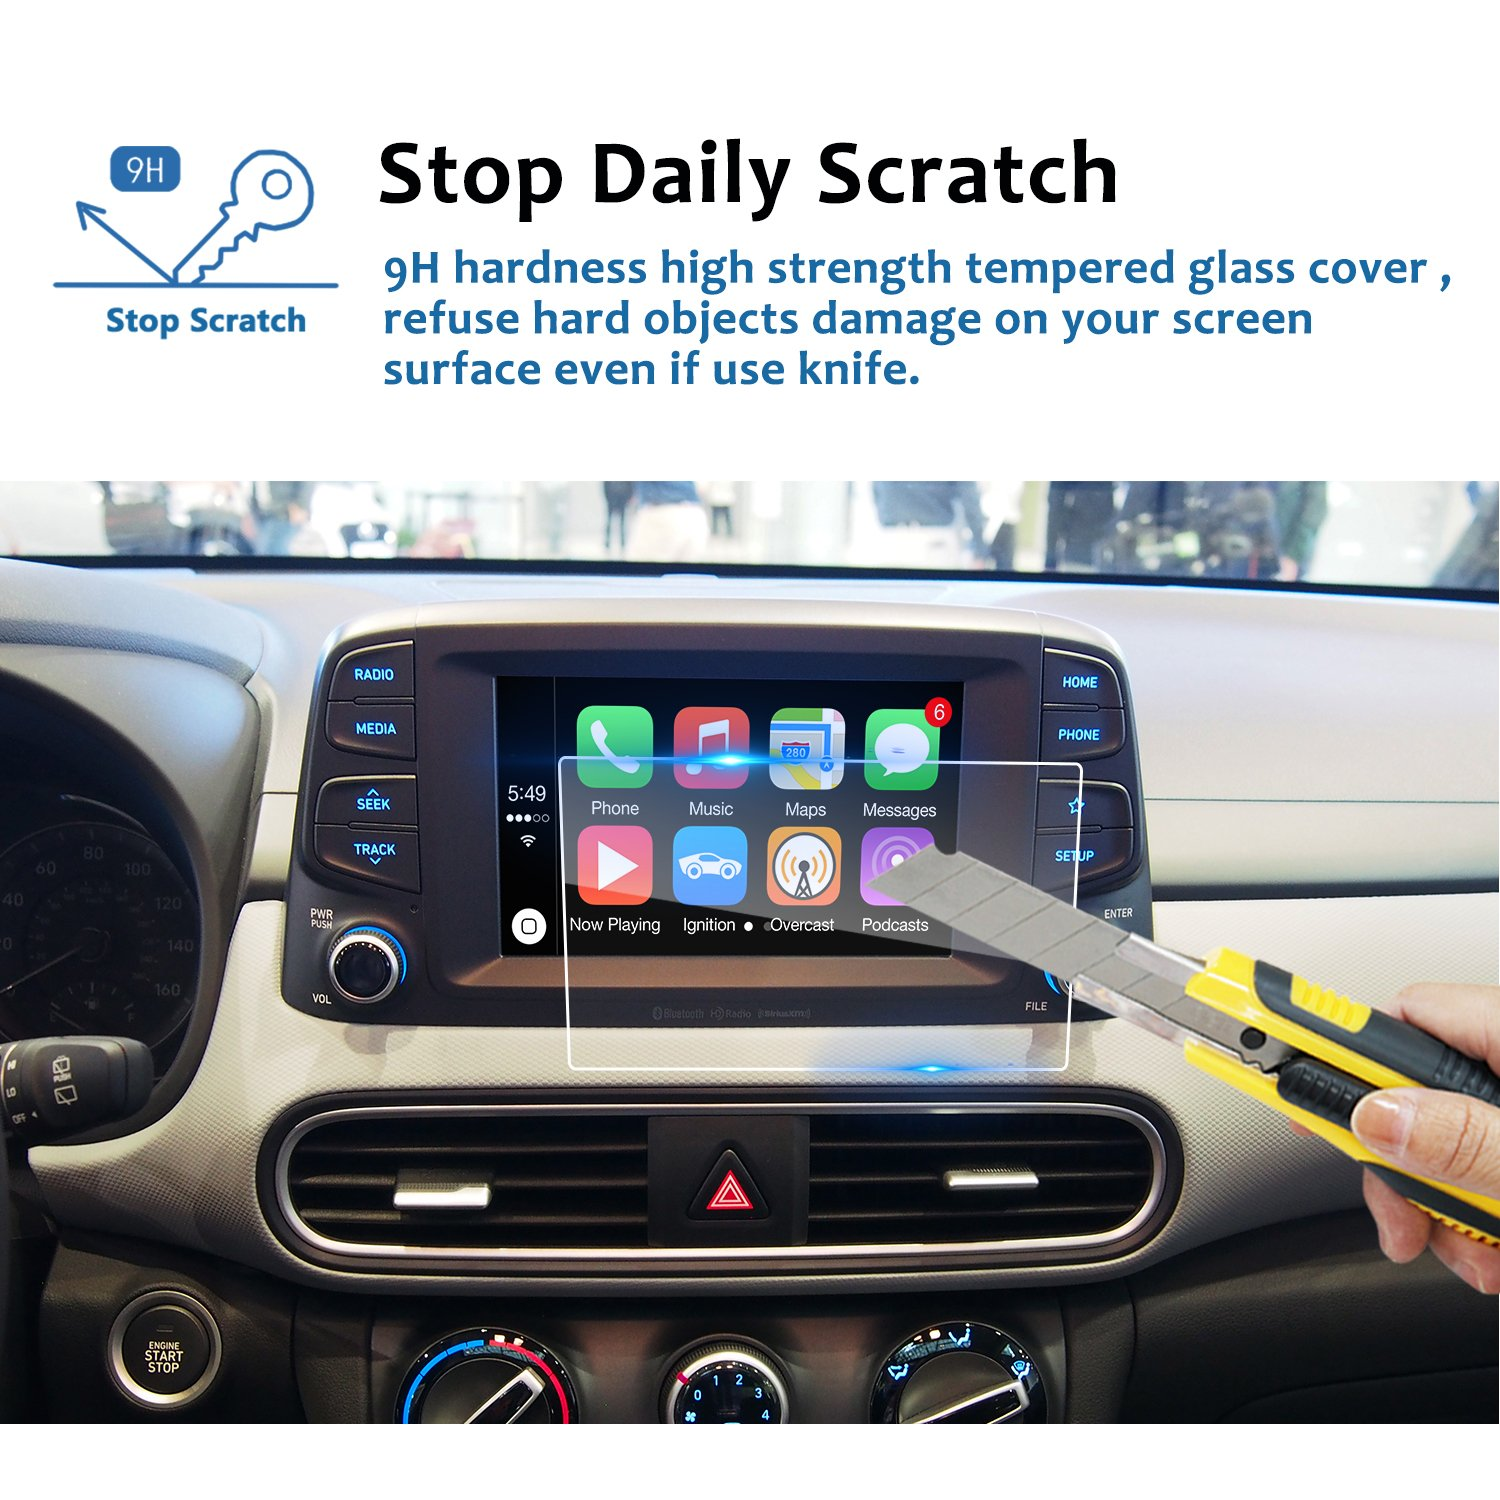 9H LFOTPP Car Navigation Screen Protector for 2017-2018 Elantra GT Blue Link 7 Inch, Tempered Glass Infotainment Center Touch Screen Protector Anti Scratch High Clarity LiFan 2017-2018 Hyundai Elantra GT 7 inch